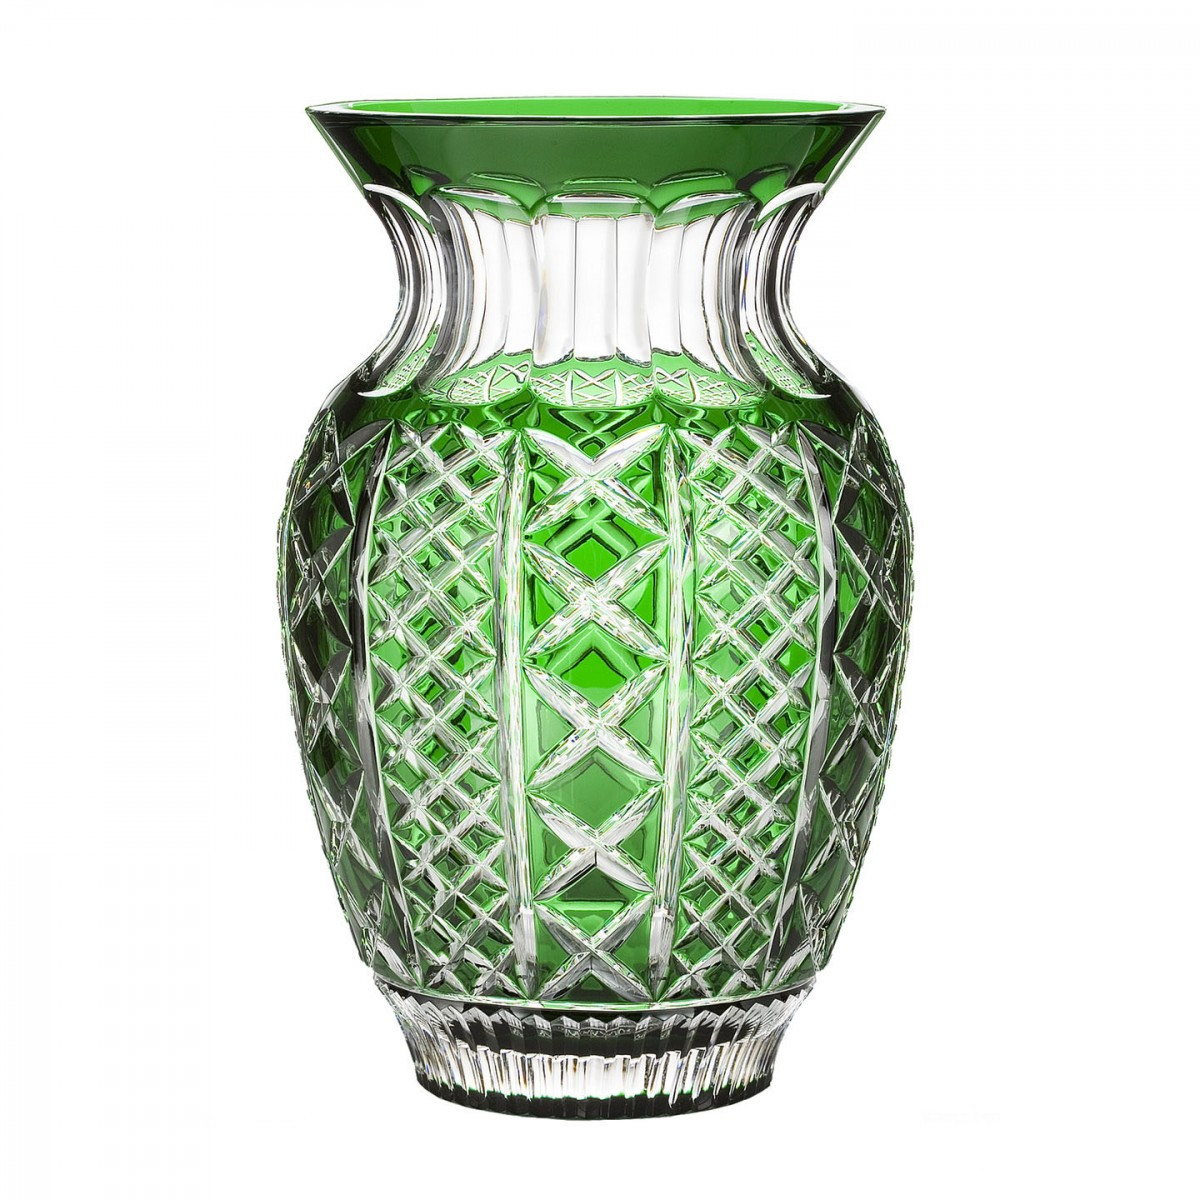 waterford marquis markham vase of fleurology molly emerald 12in bouquet vase discontinued for fleurology molly emerald 12in bouquet vase discontinued